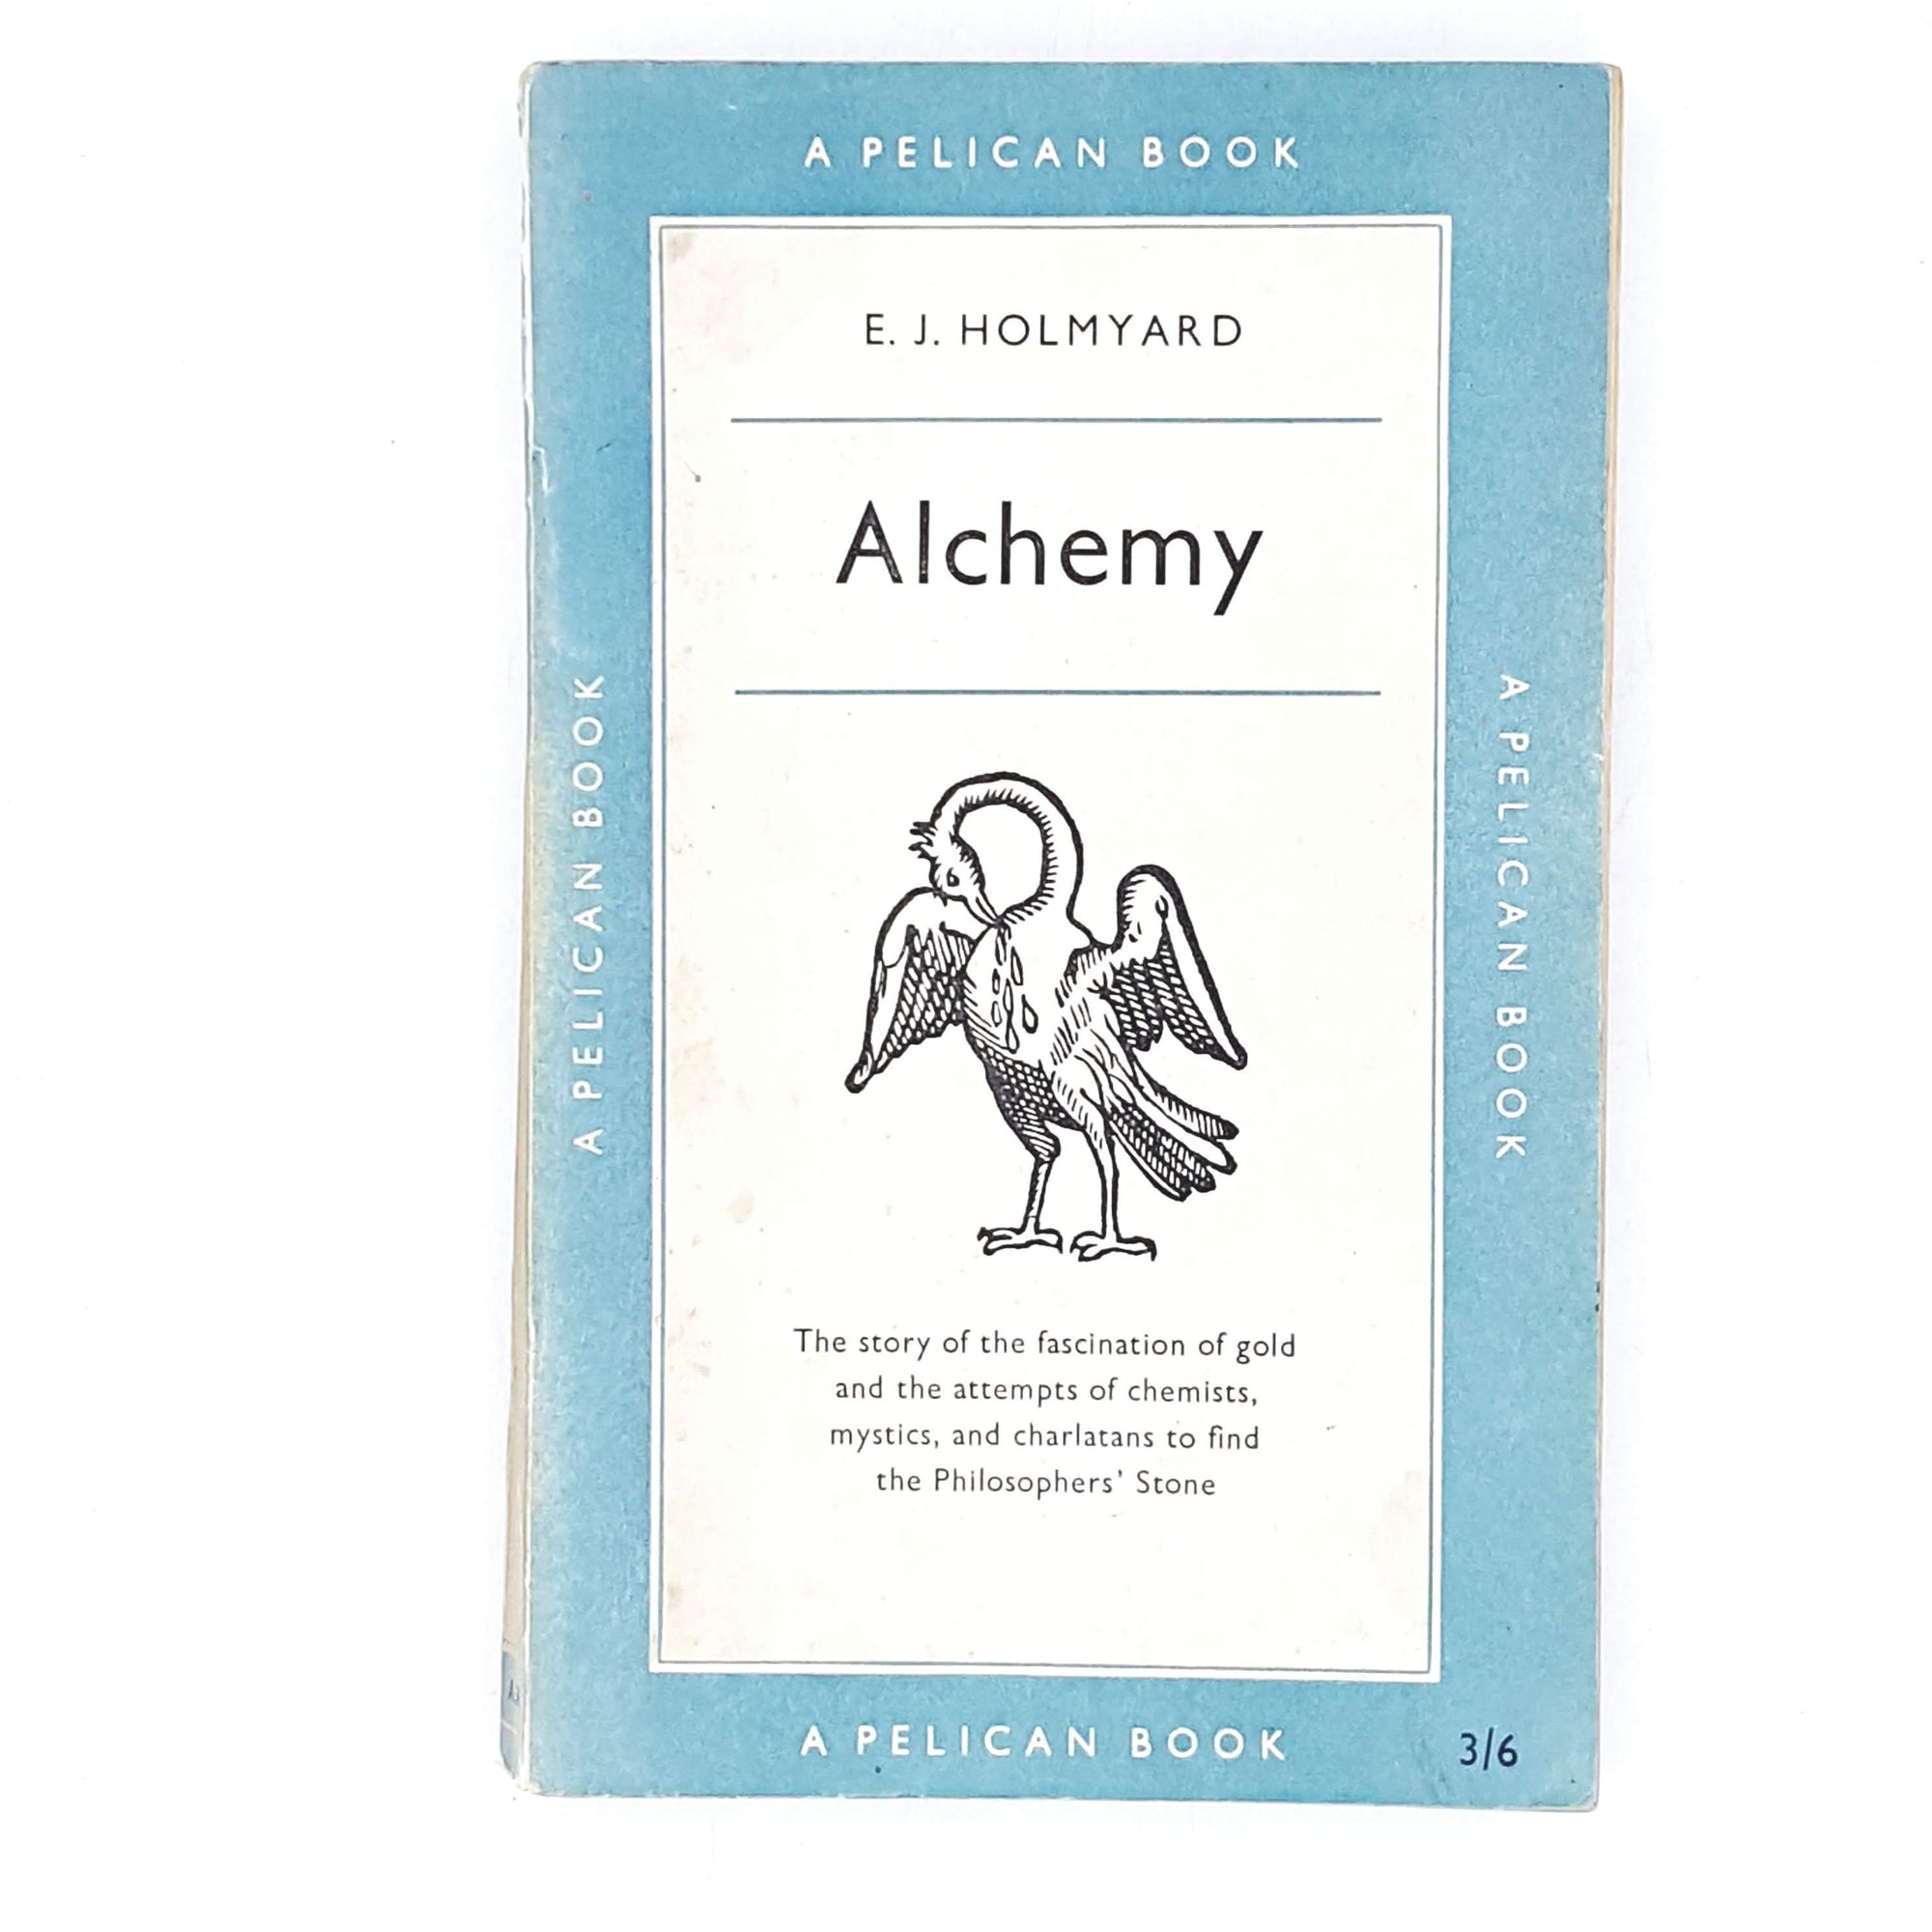 vintage-pelican-alchemy-by-e.-j.-holmyard-1957-pale-blue-country-house-library